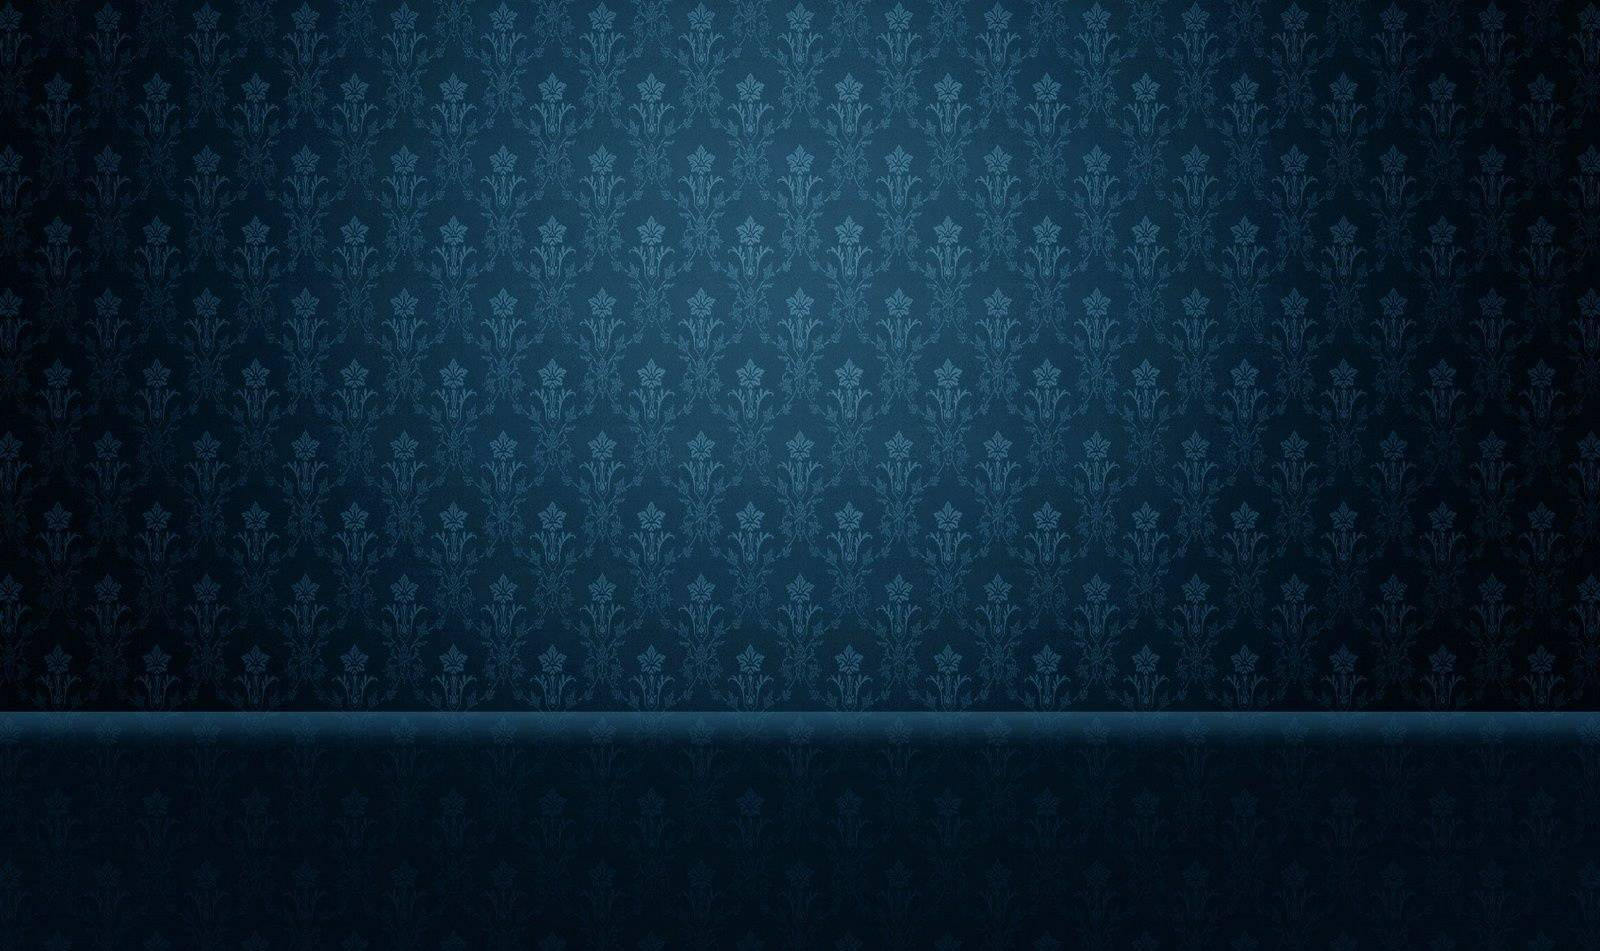 Dark Textures clipart blue texture background And more! Black High and